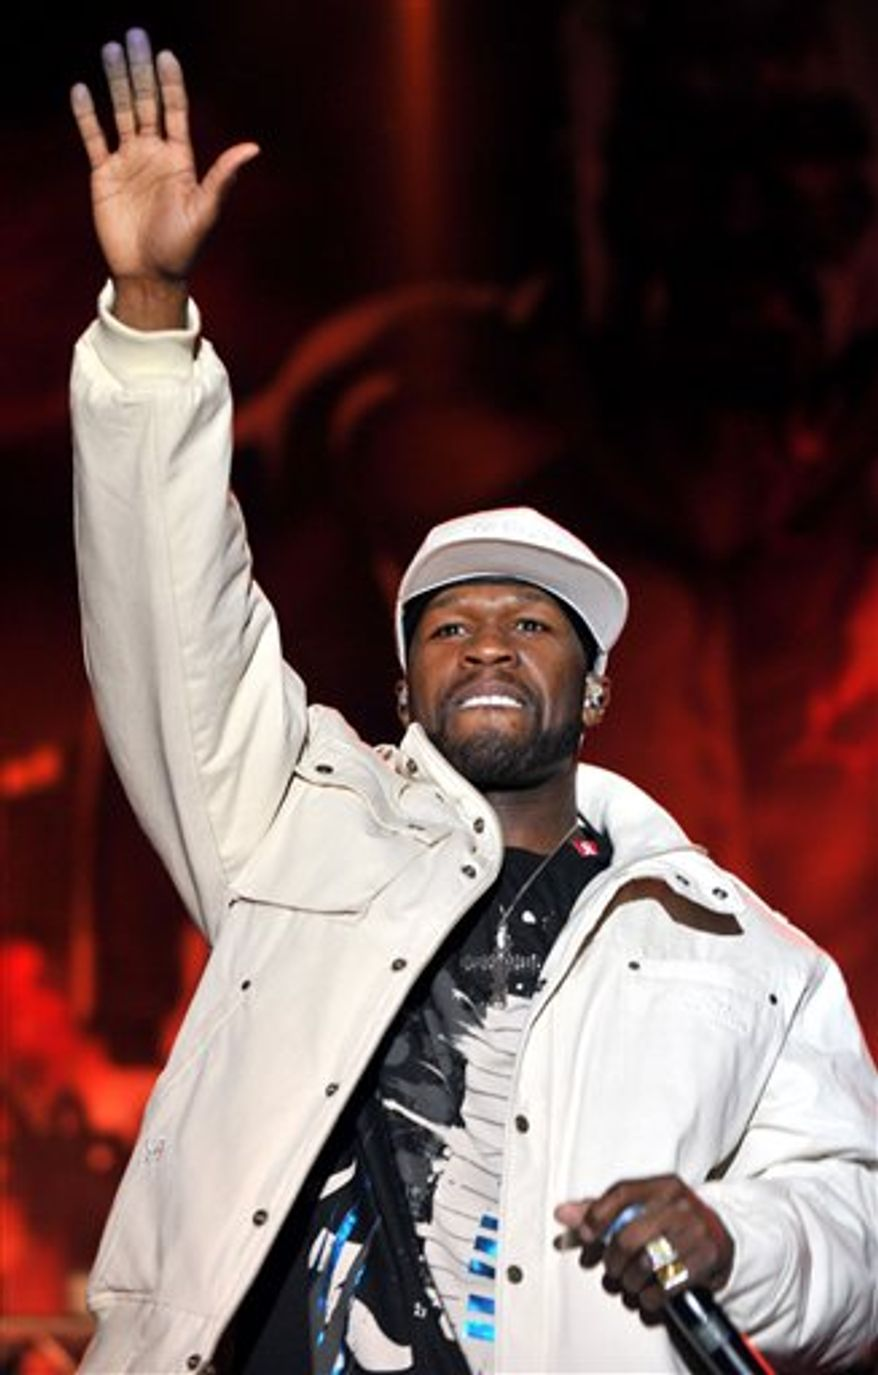 FILE - In this March 31, 2010 file photo, U.S. musician and actor Curtis Jackson also known as 50 Cent performs in Boris Trajkovski hall in Skopje, Macedonia.  50 Cent is the latest artist to make a donation to charity after it was revealed he performed at an event linked to the clan of Libyan leader Moammar Gadhafi. A statement released Wednesday, March 9, 2011, said the rapper, who has his own G-Unity foundation, will be making a donation to UNICEF to help with that organization's relief efforts during the turmoil in Libya. (AP Photo/Boris Grdanoski, file)